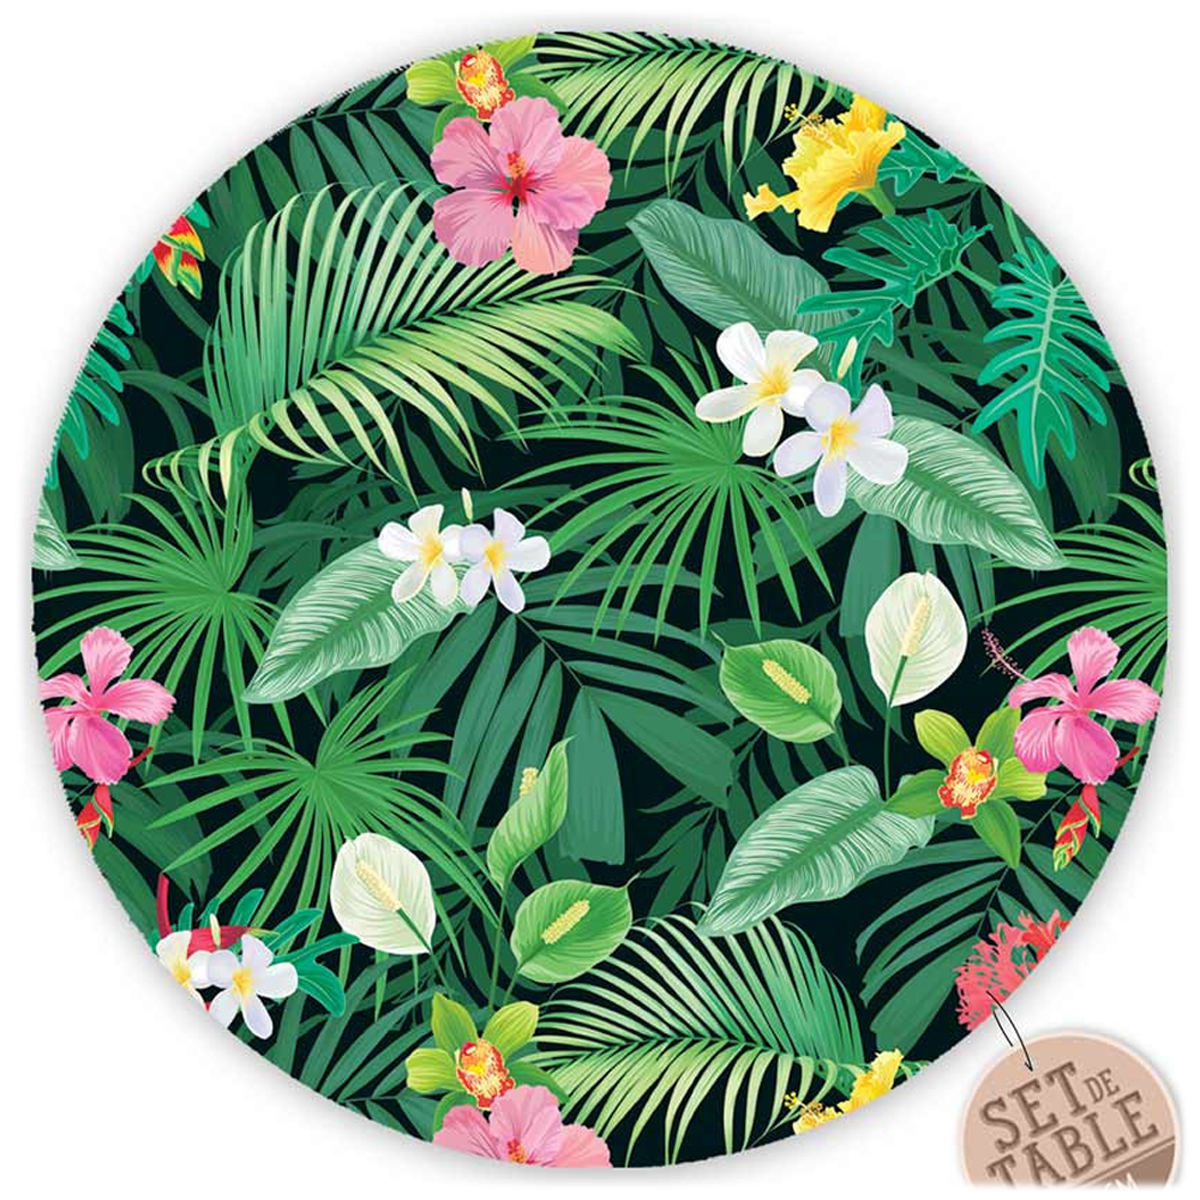 Set de table plastifié \'Tropical\' rose vert (hibiscus feuilles) - 38 cm - [R1618]